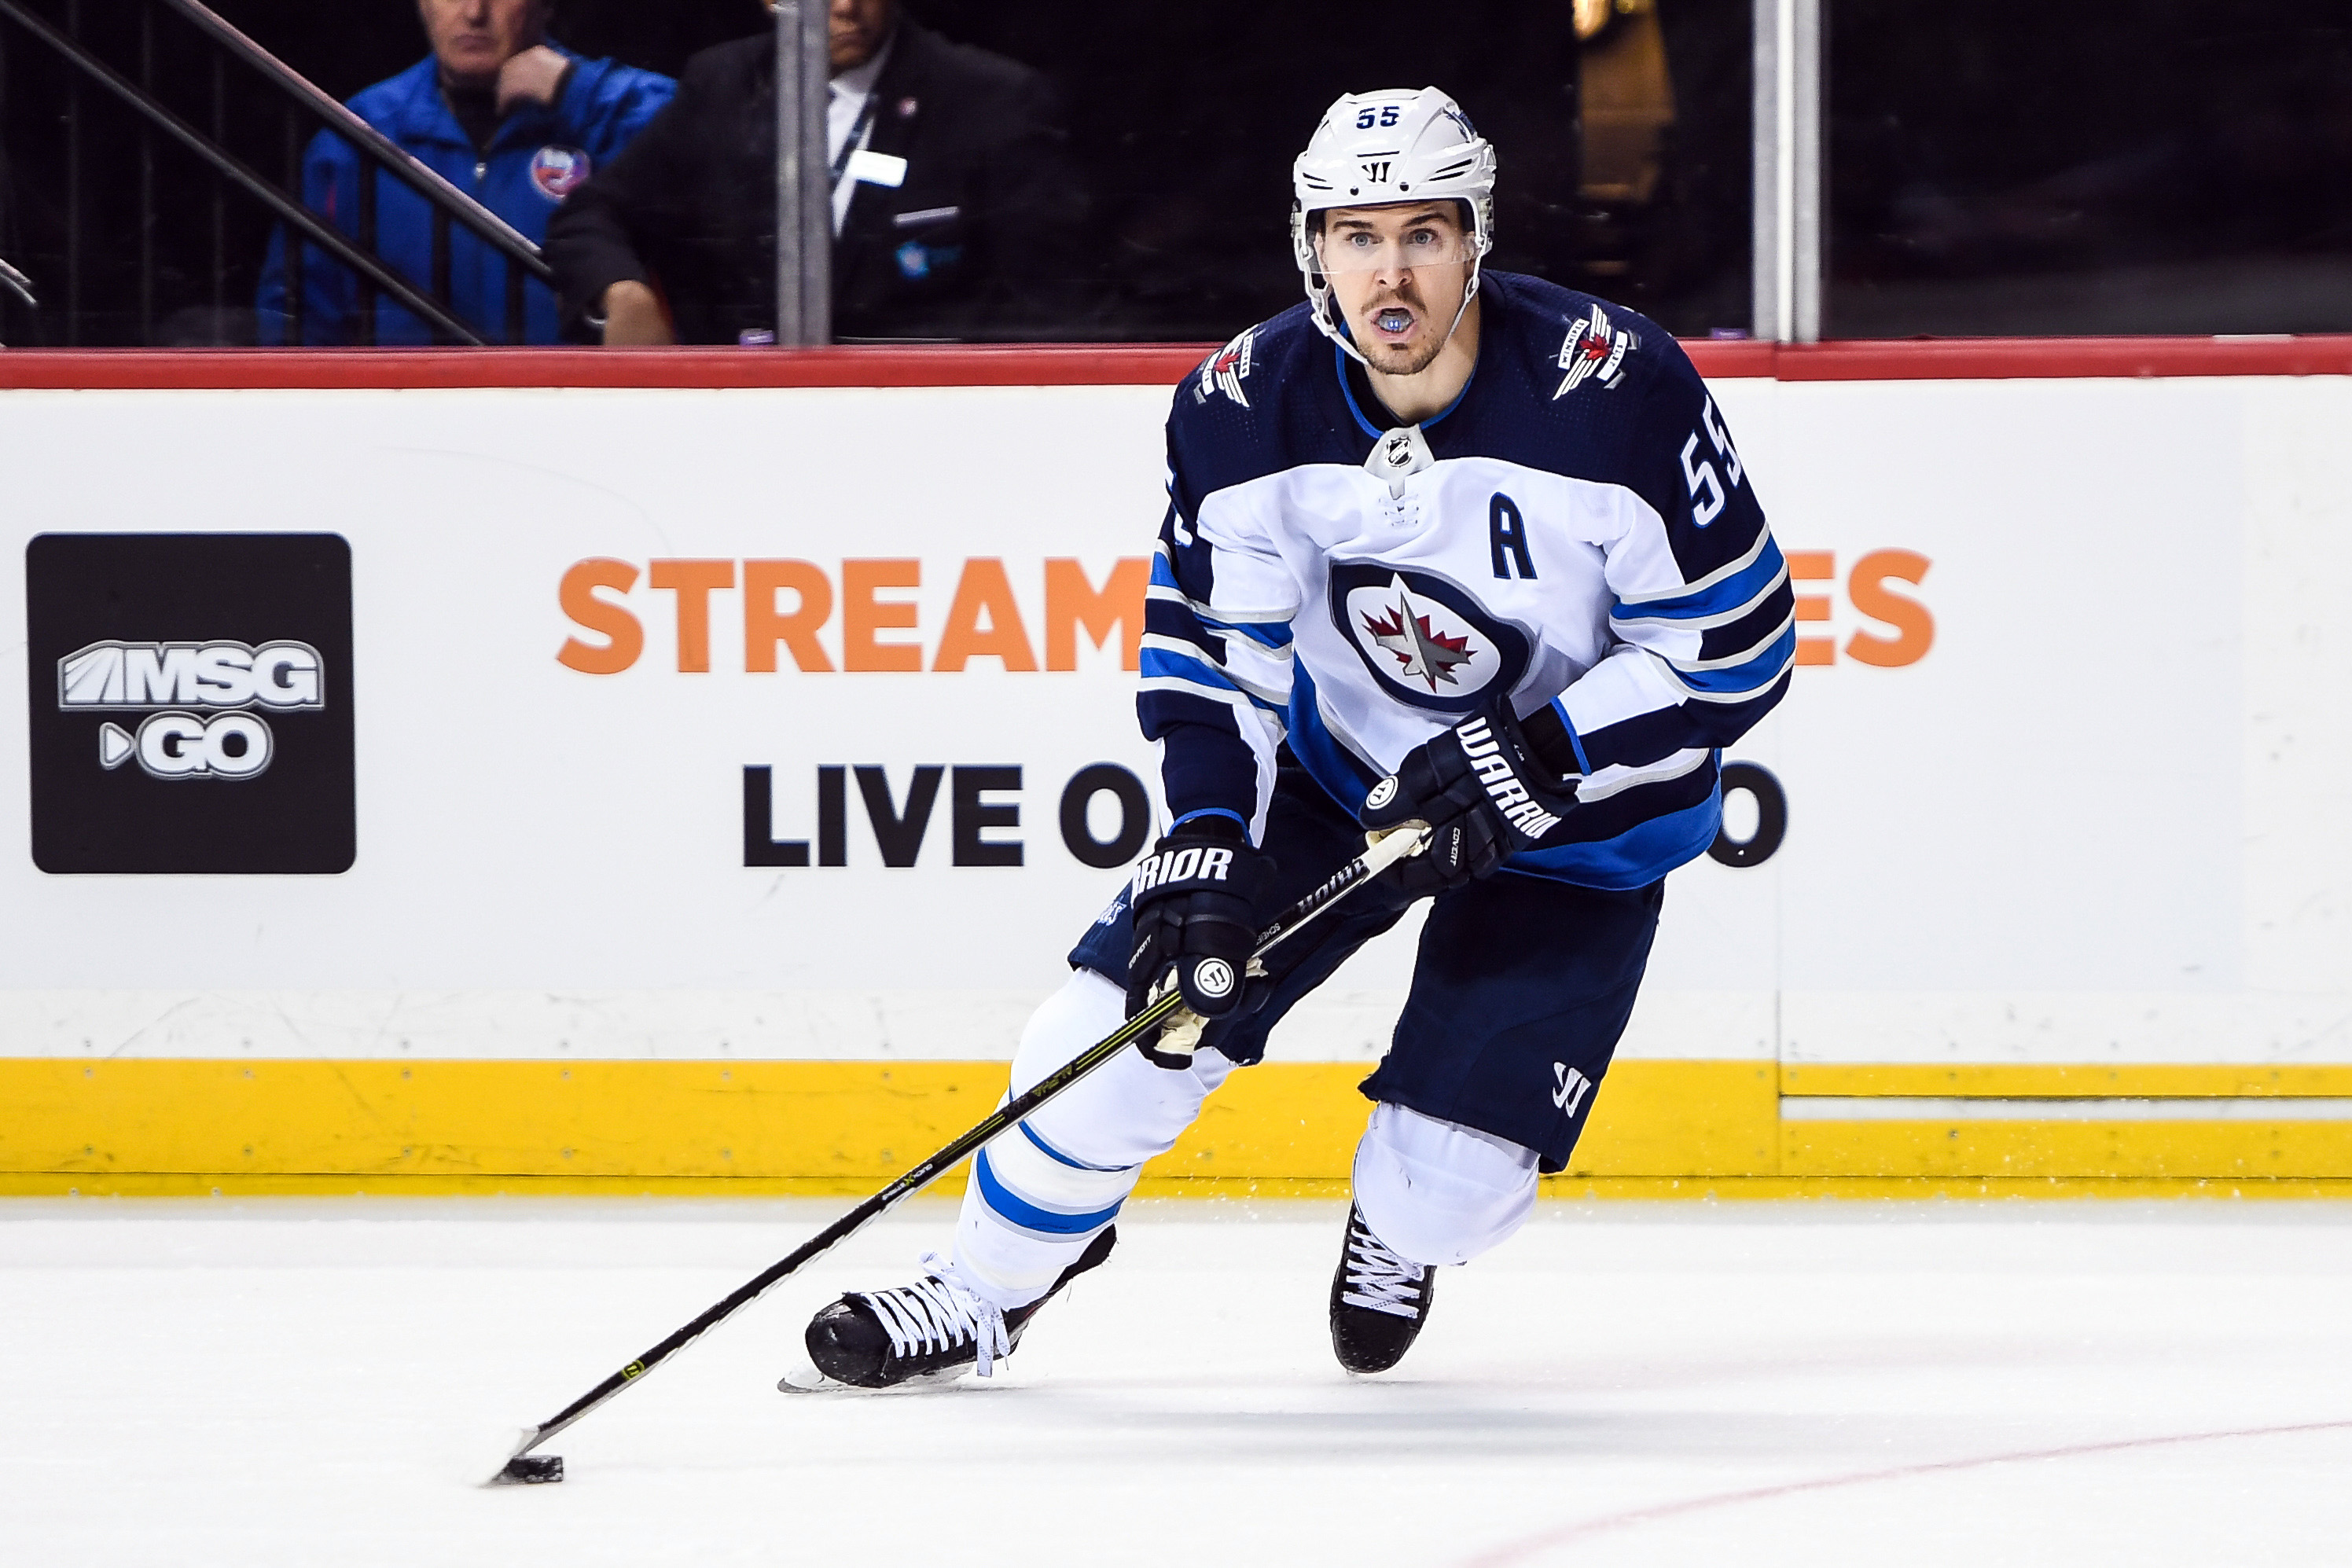 Mark Scheifele Named NHL's 2nd Star of the Week